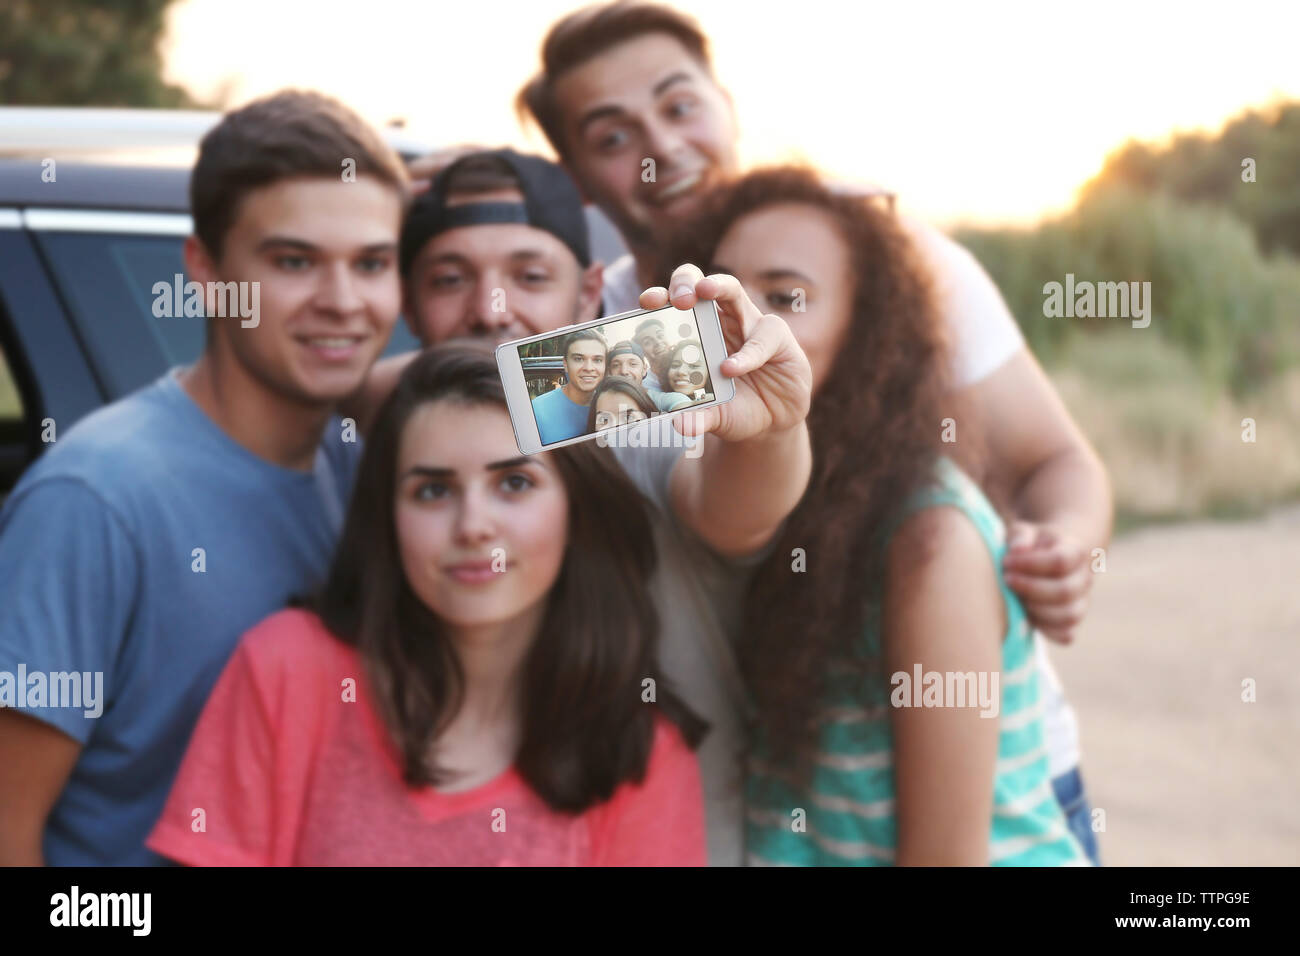 Cheerful friends taking selfie, outdoors - Stock Image